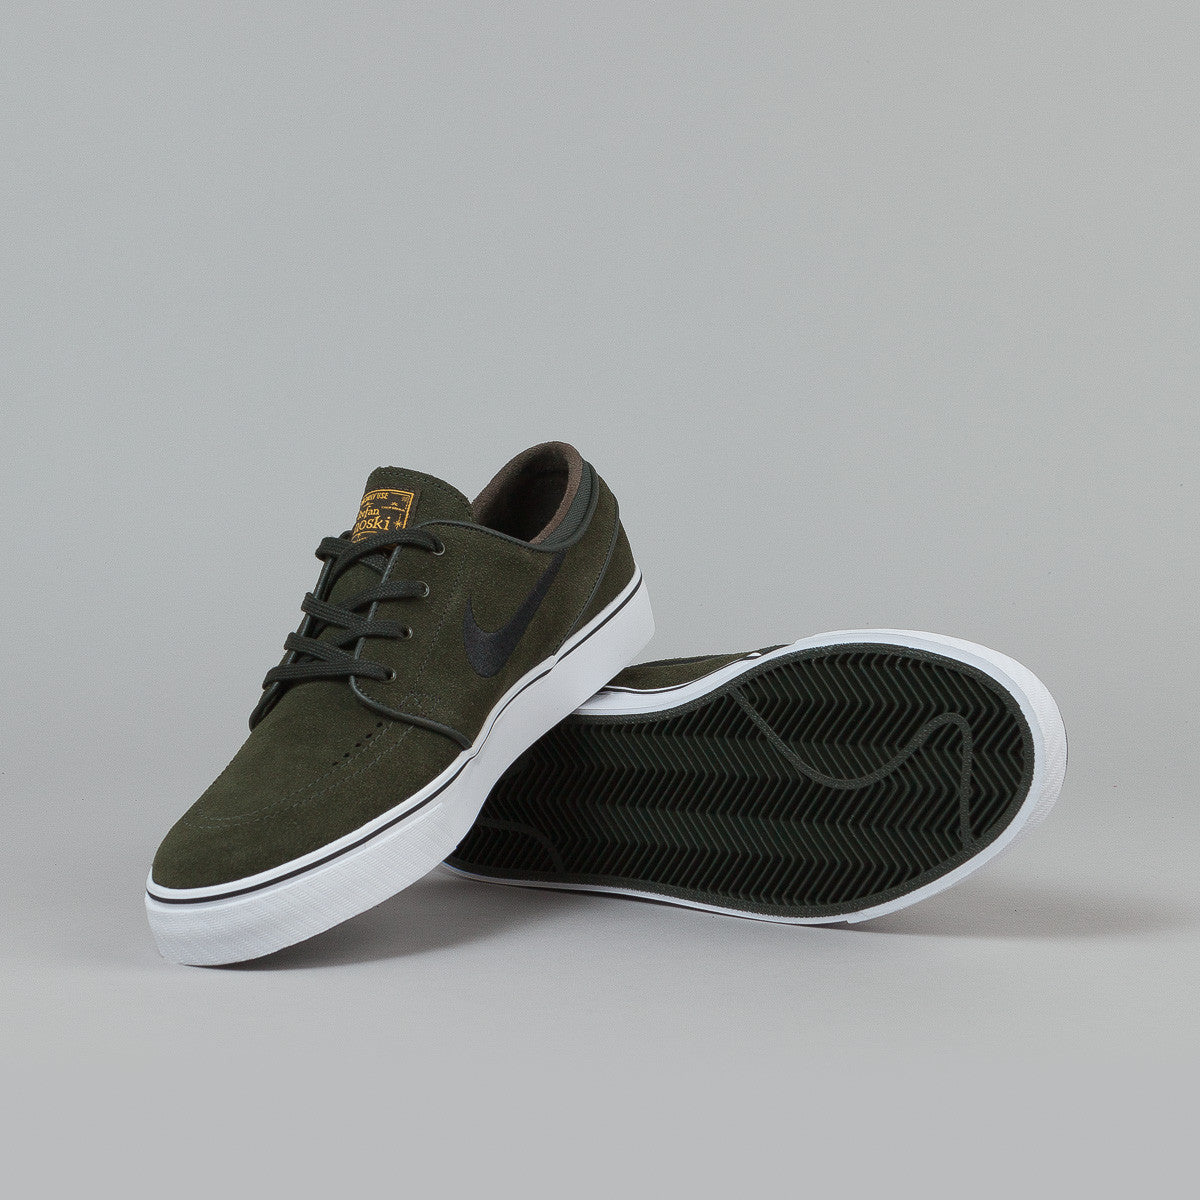 Nike SB Stefan Janoski Shoes - Sequoia / University Gold - White - Black